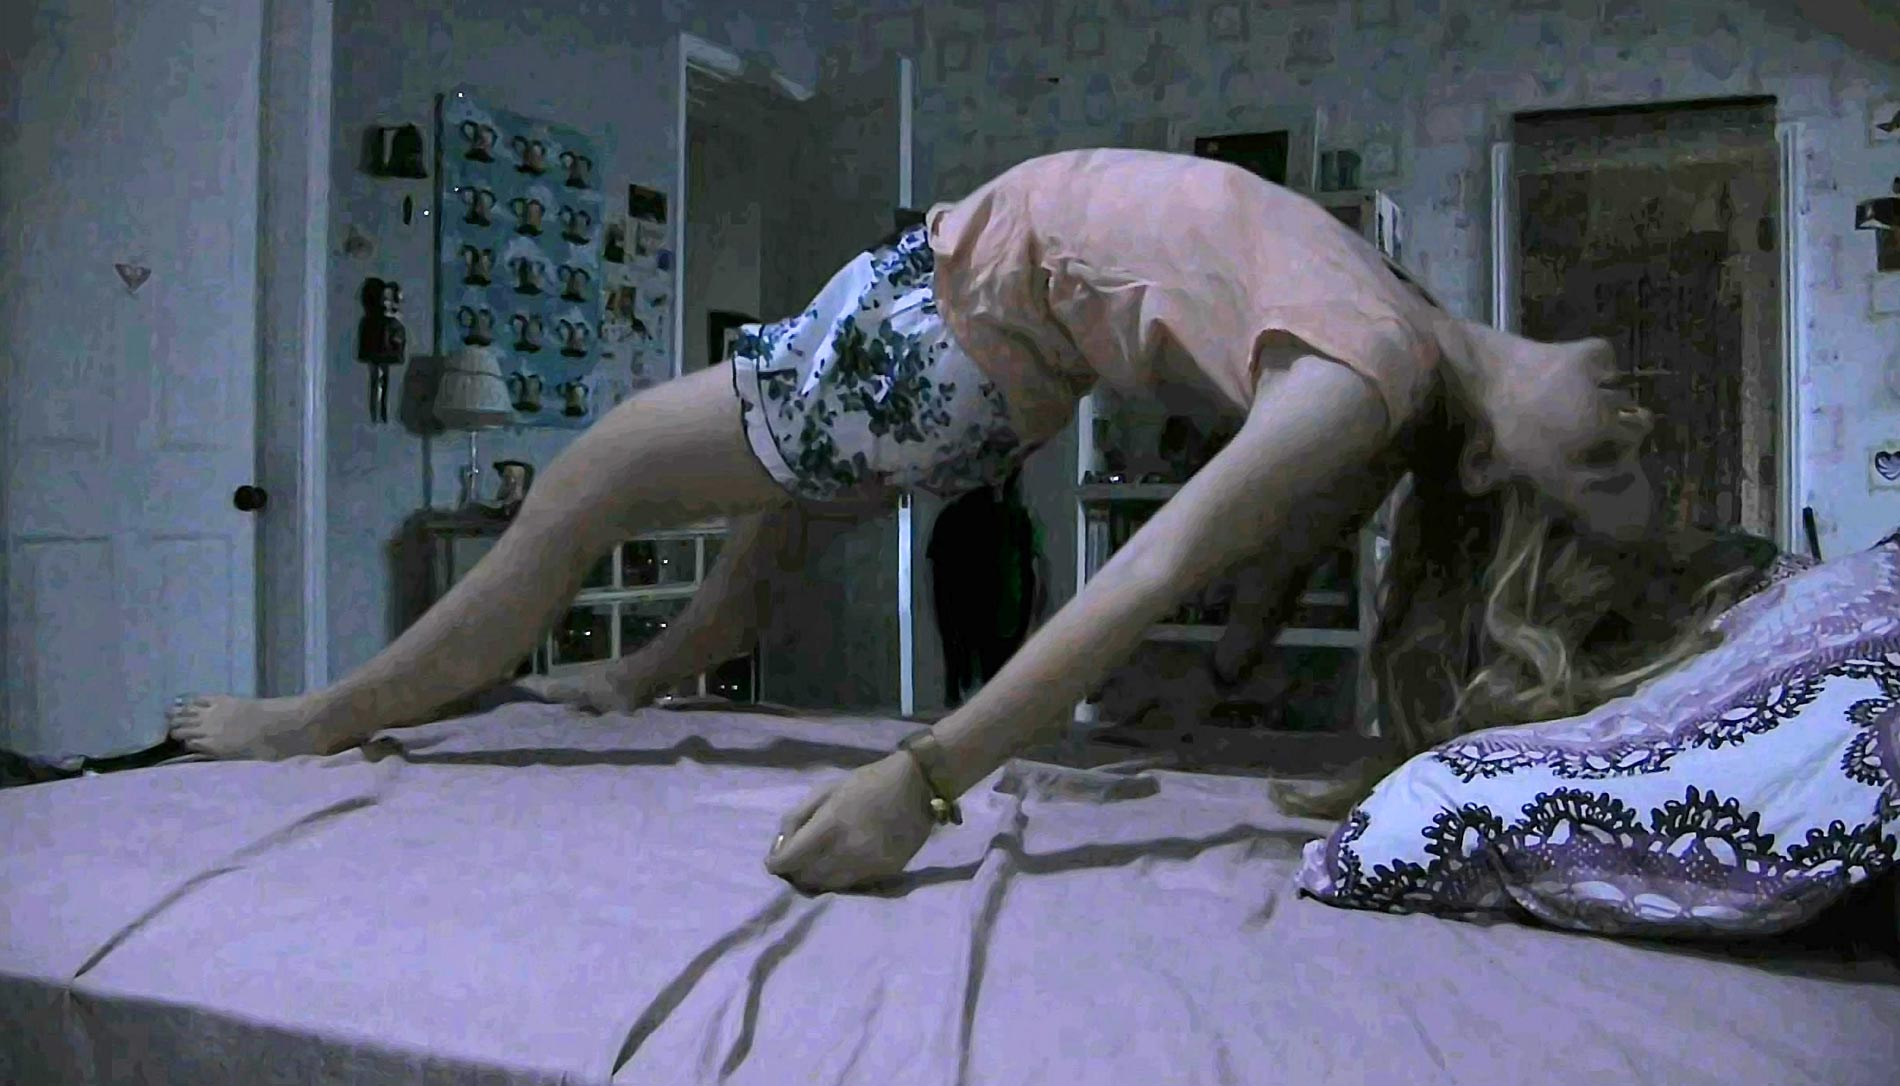 'Paranormal Activity 4' delivers what it promises, but holes are starting to show